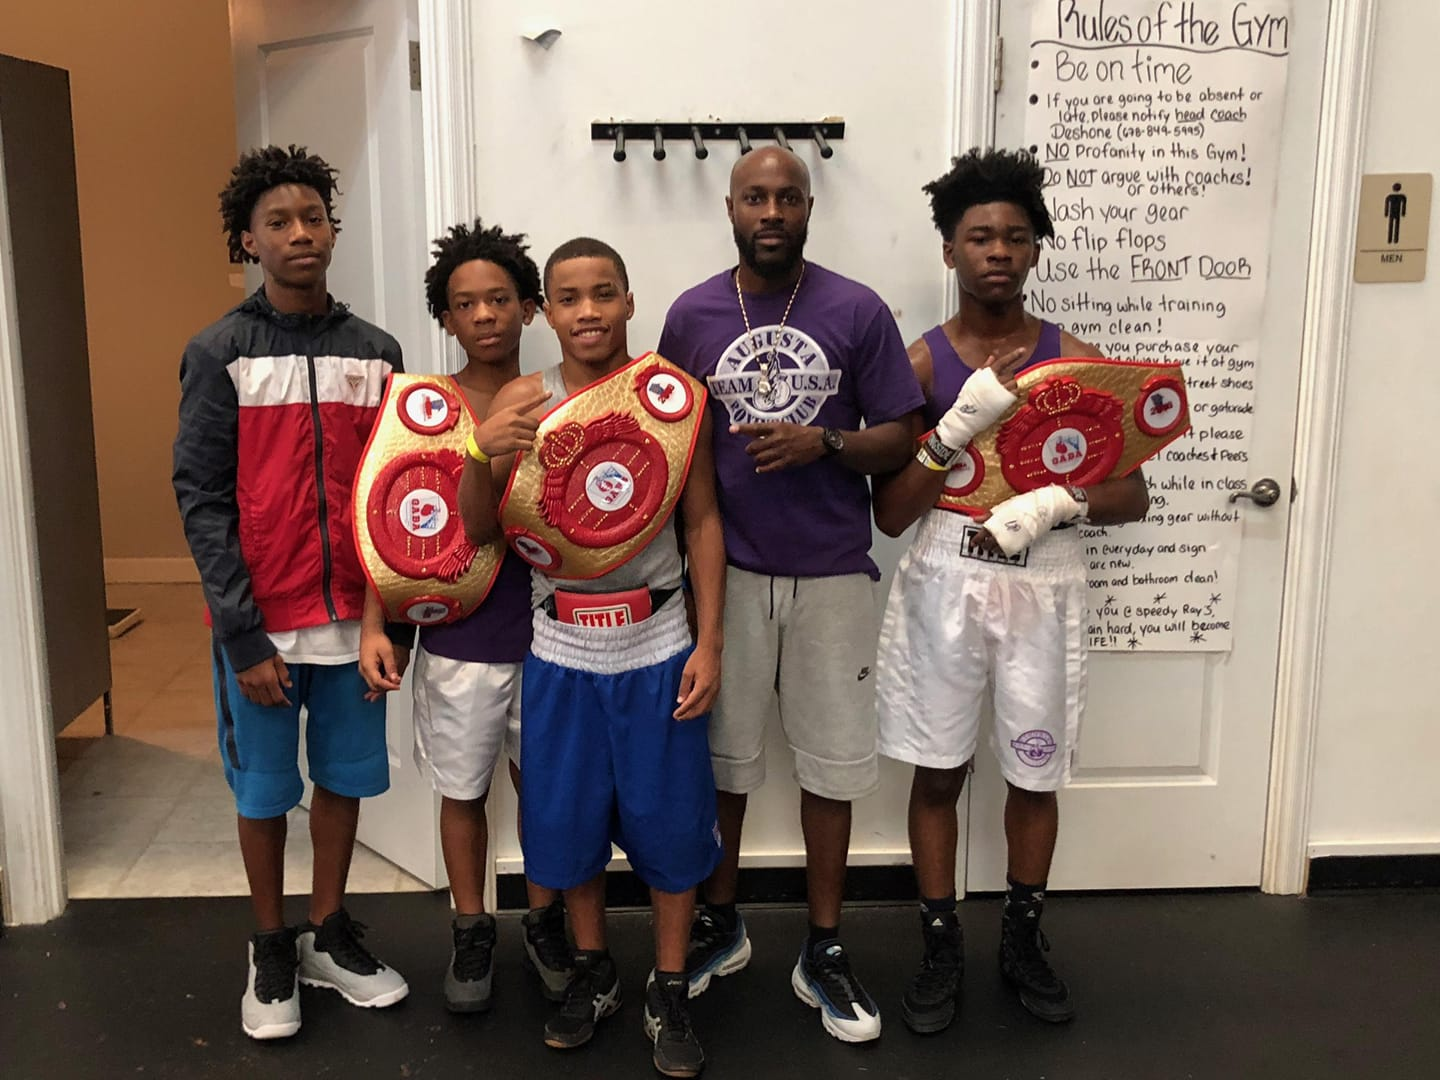 """From Left to right: Rayonta """"RJ"""" Whitfield, Jr, Denota Daniels, Jamel Robinson, Jr, Rayonta """"Ray"""" Whitfield, Sr., and Brian Blake  August 19, 2018"""